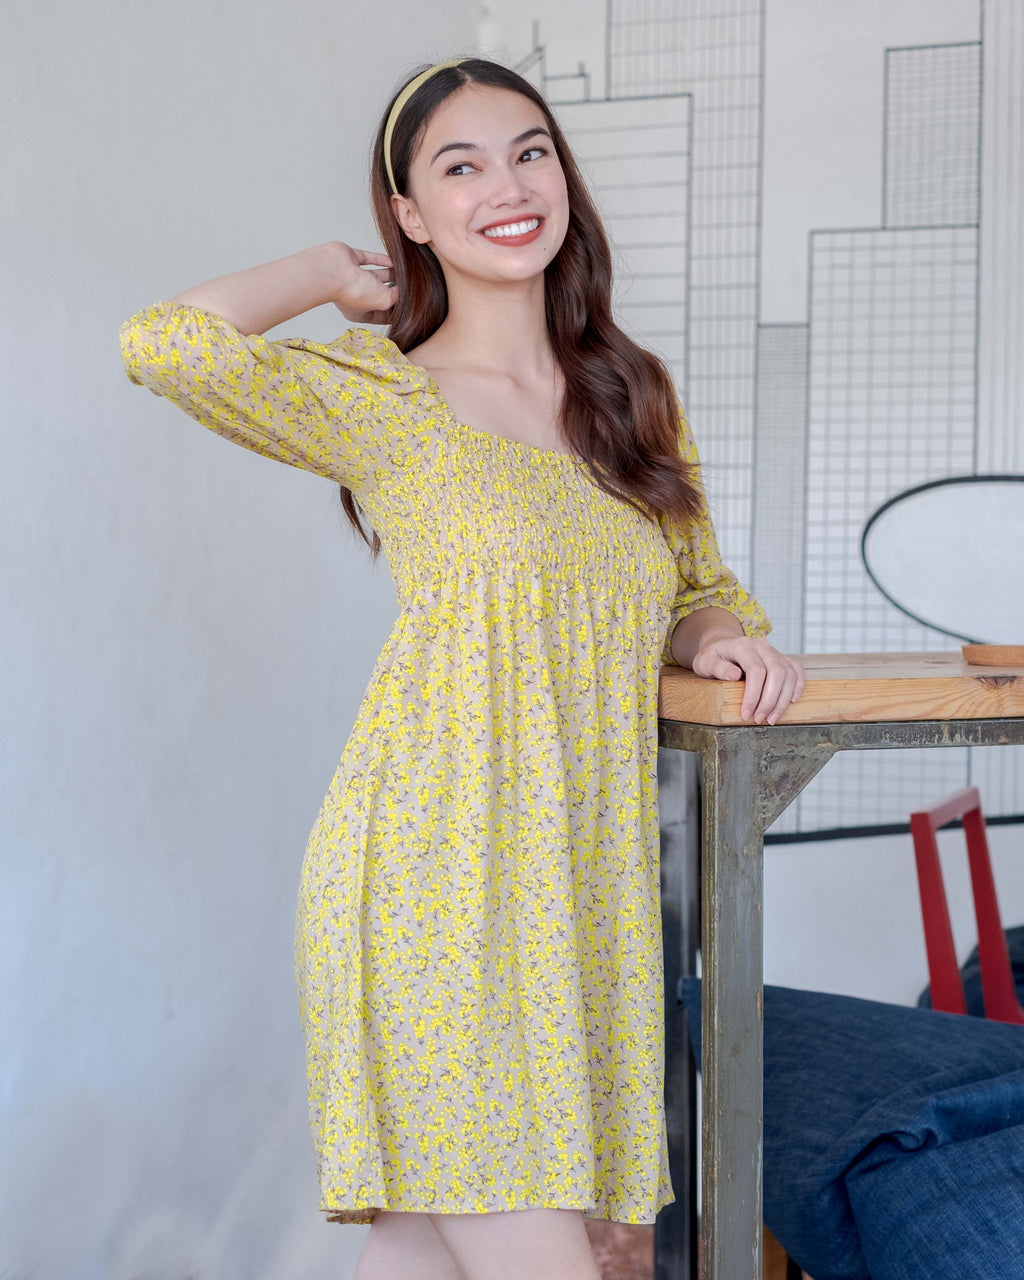 The Sophia Mini Dress - buttercup yellow floral